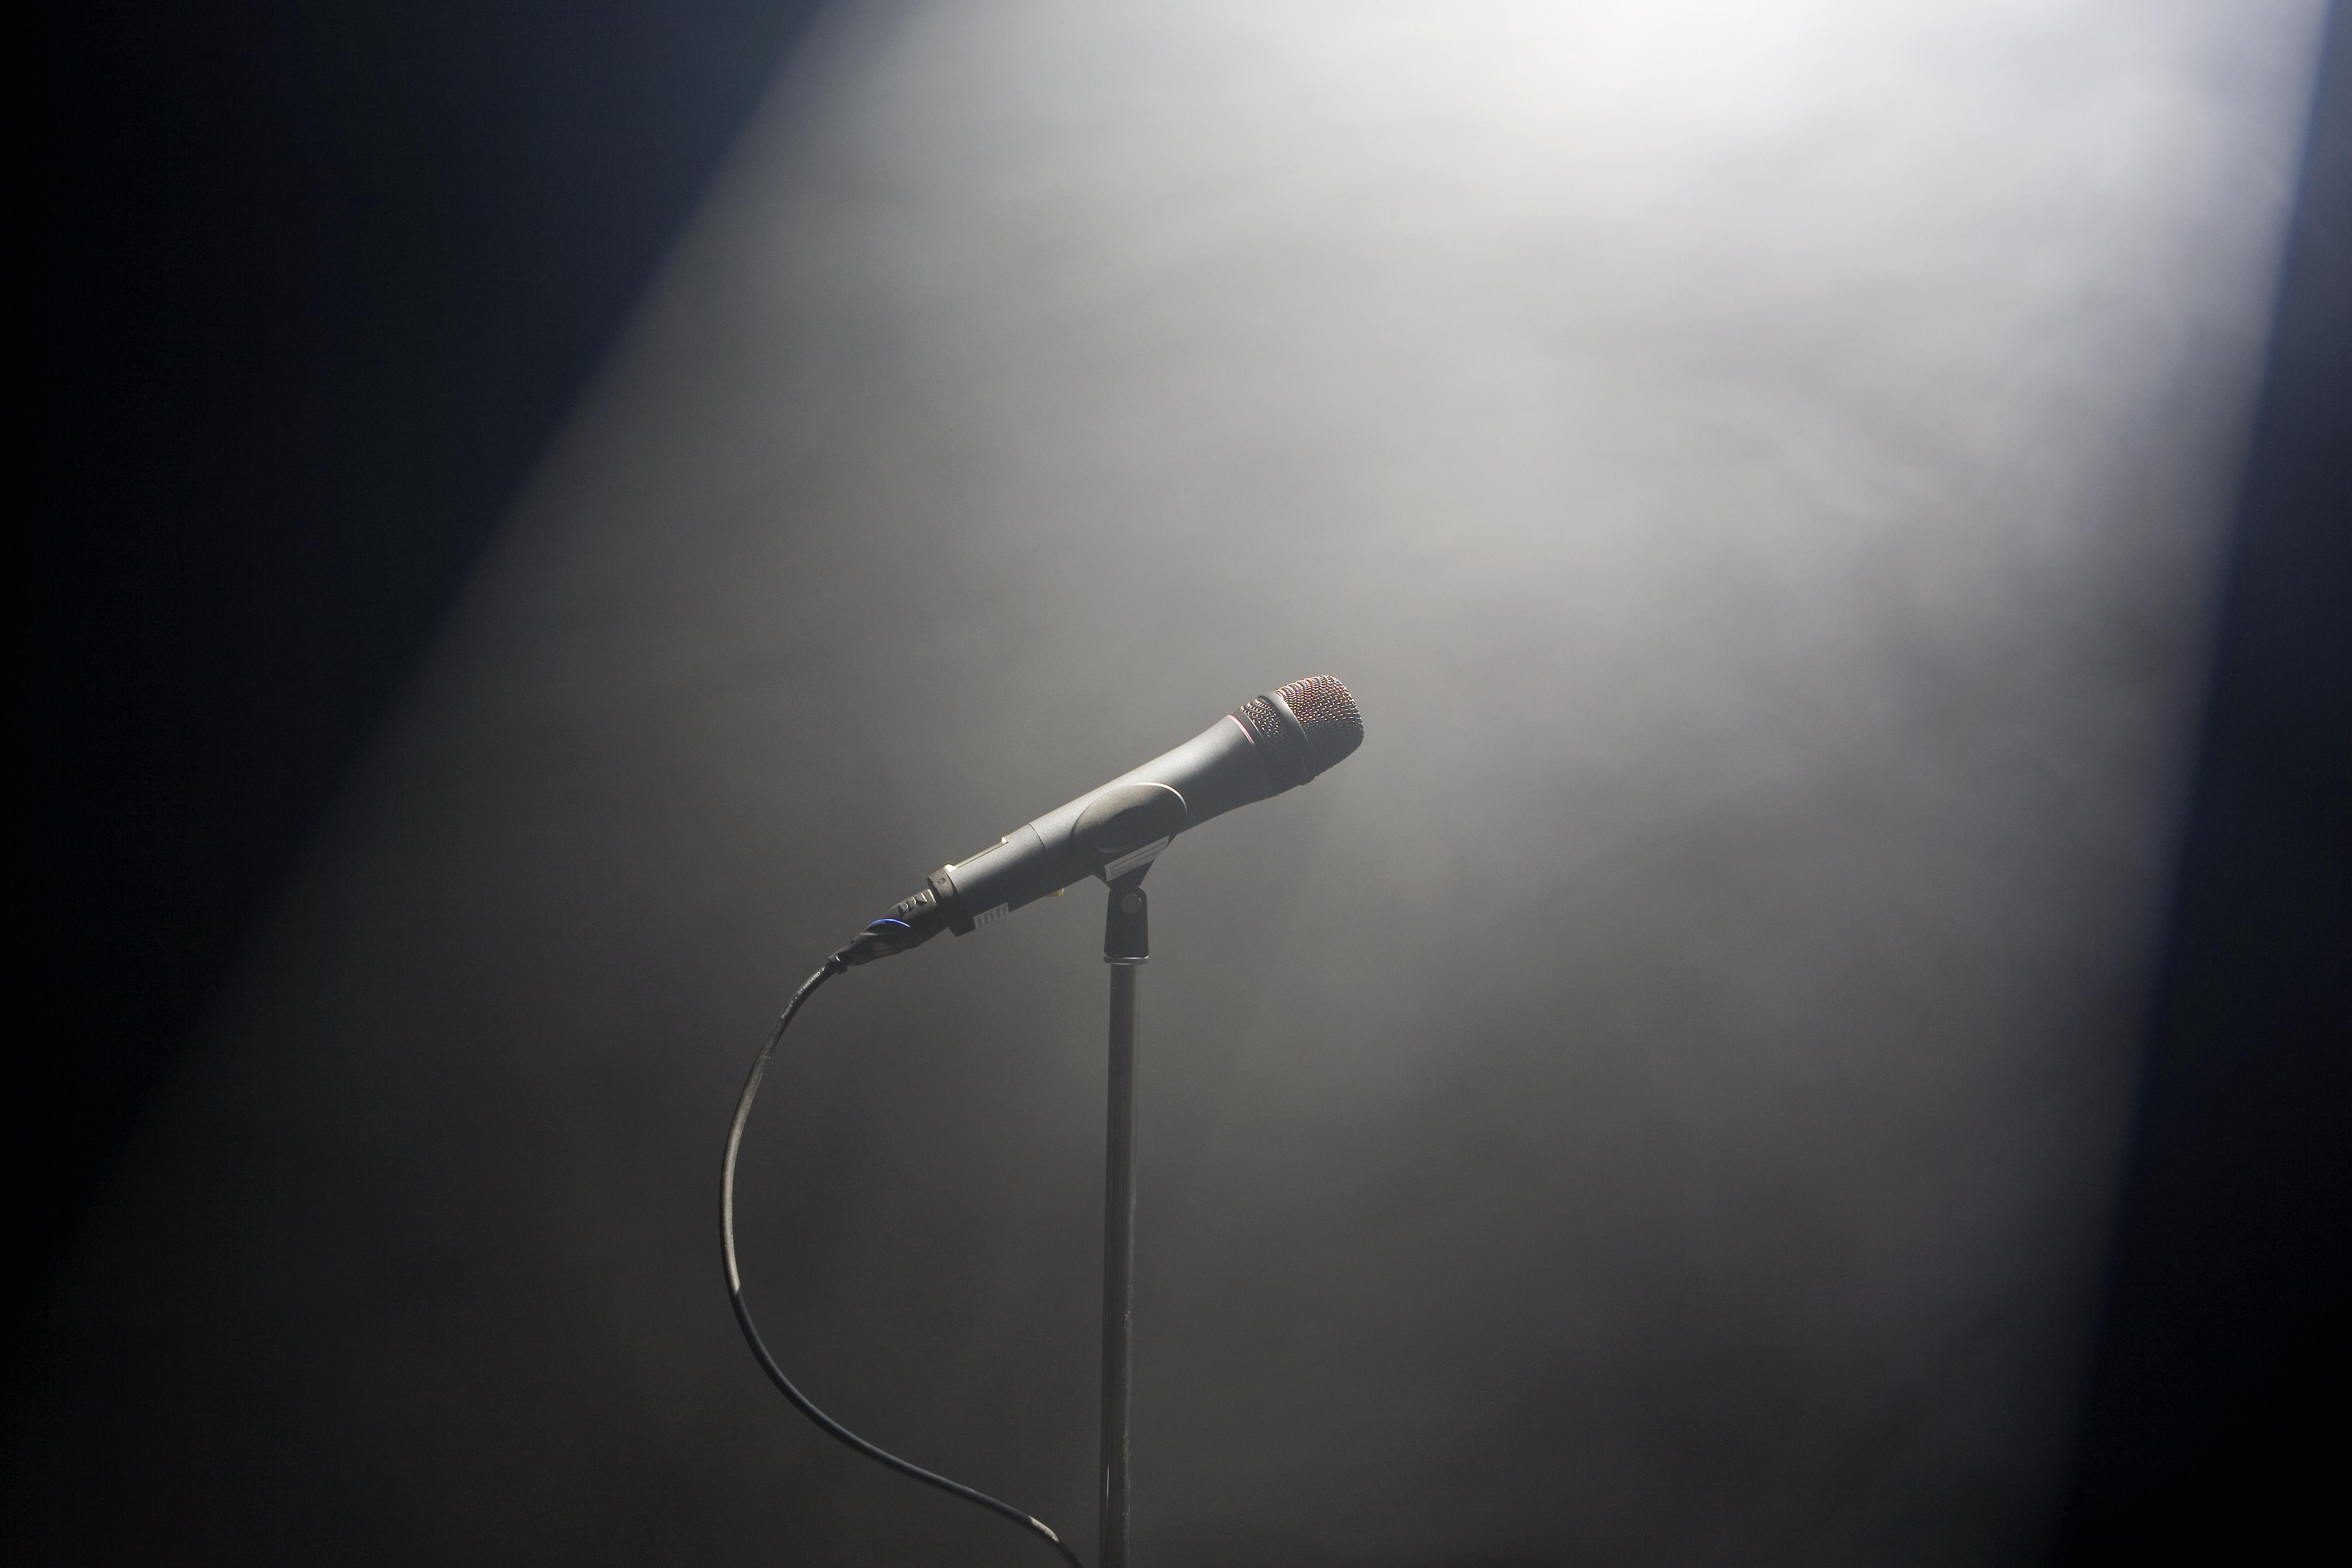 A spot lit microphone stand